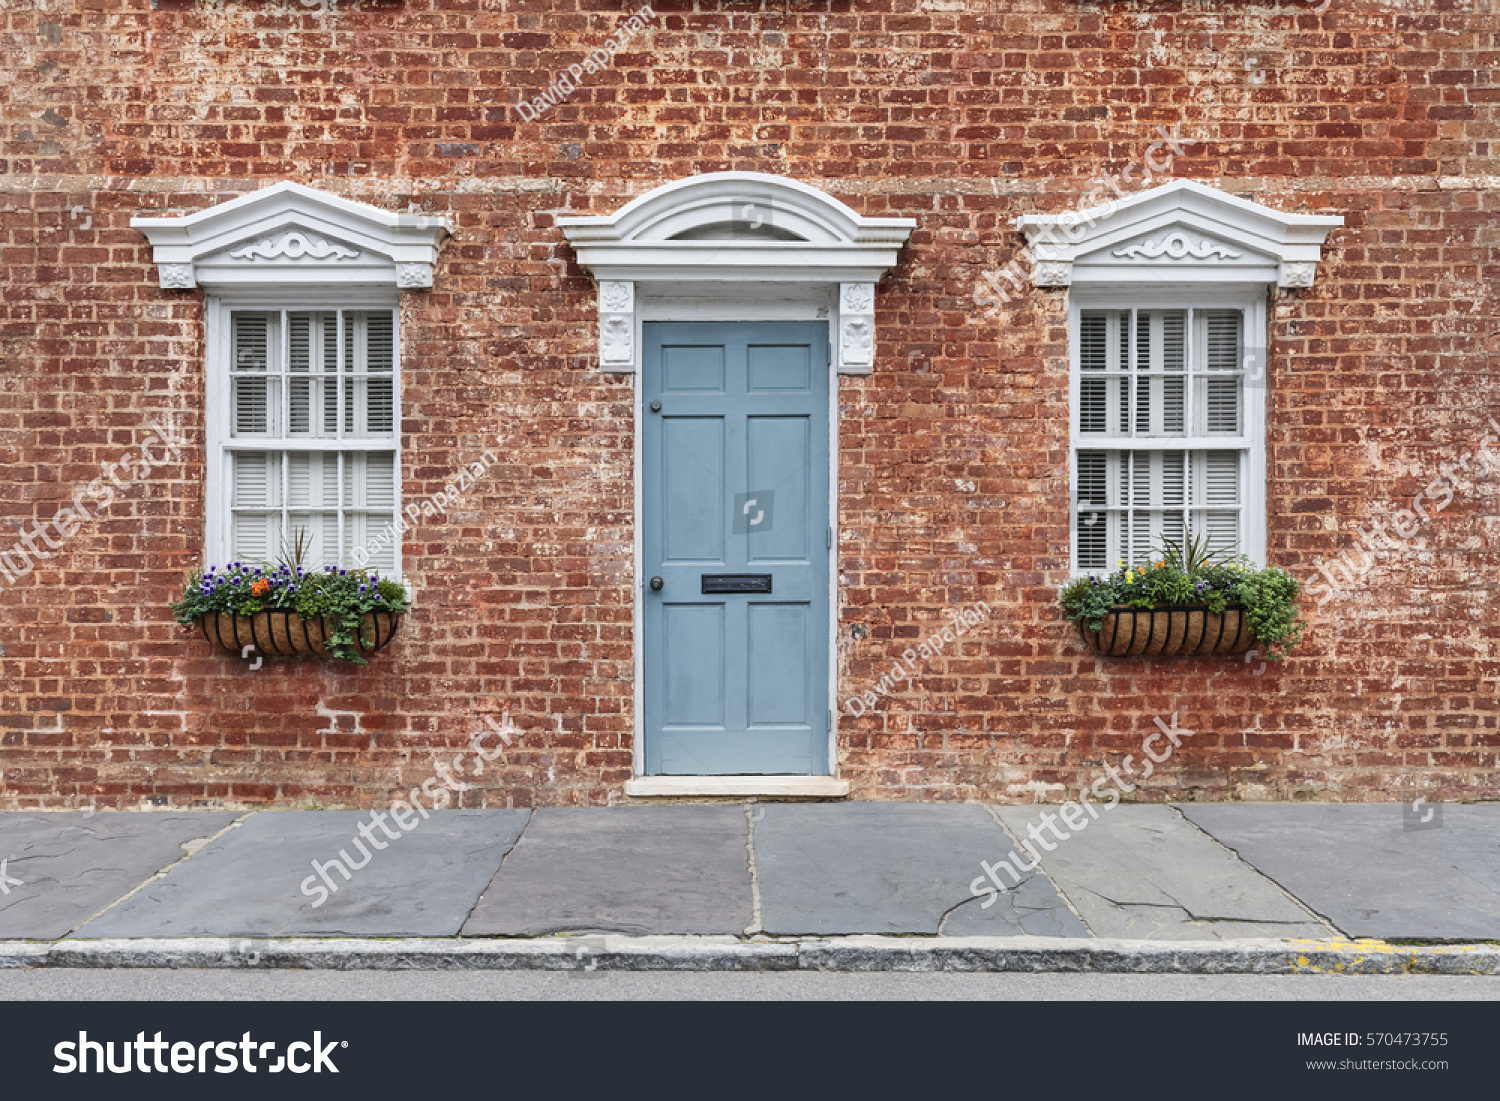 Front Door Two Windows Portico Creating Buildings Landmarks Stock Image 570473755,Architectural Design Phases Percentages